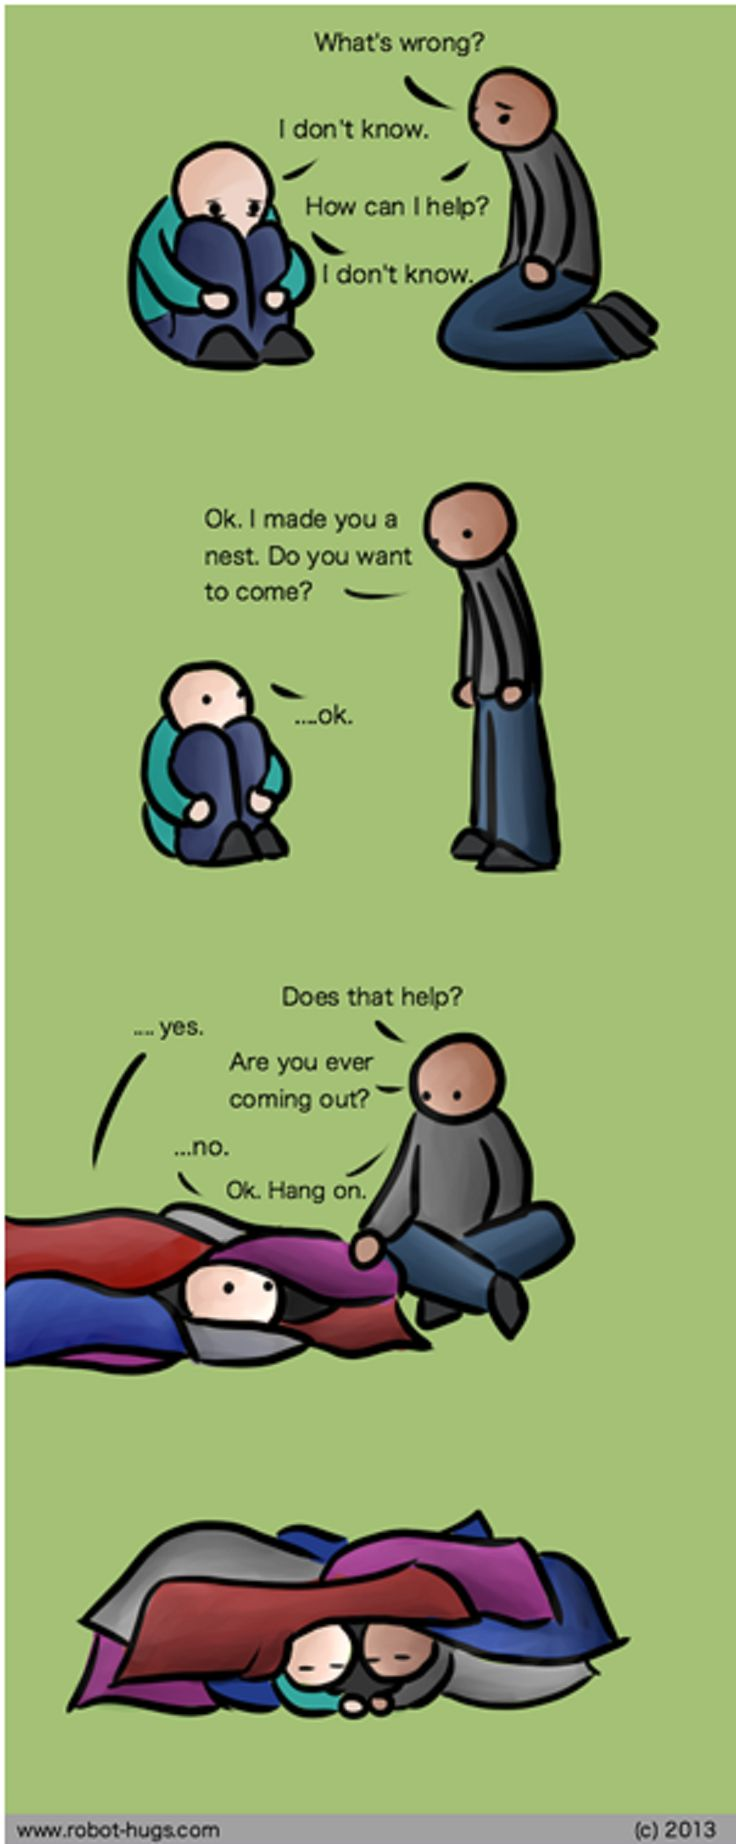 awww...♥  people who have friends/family that deal with depression need to understand that sometimes this is all we need. I love this.